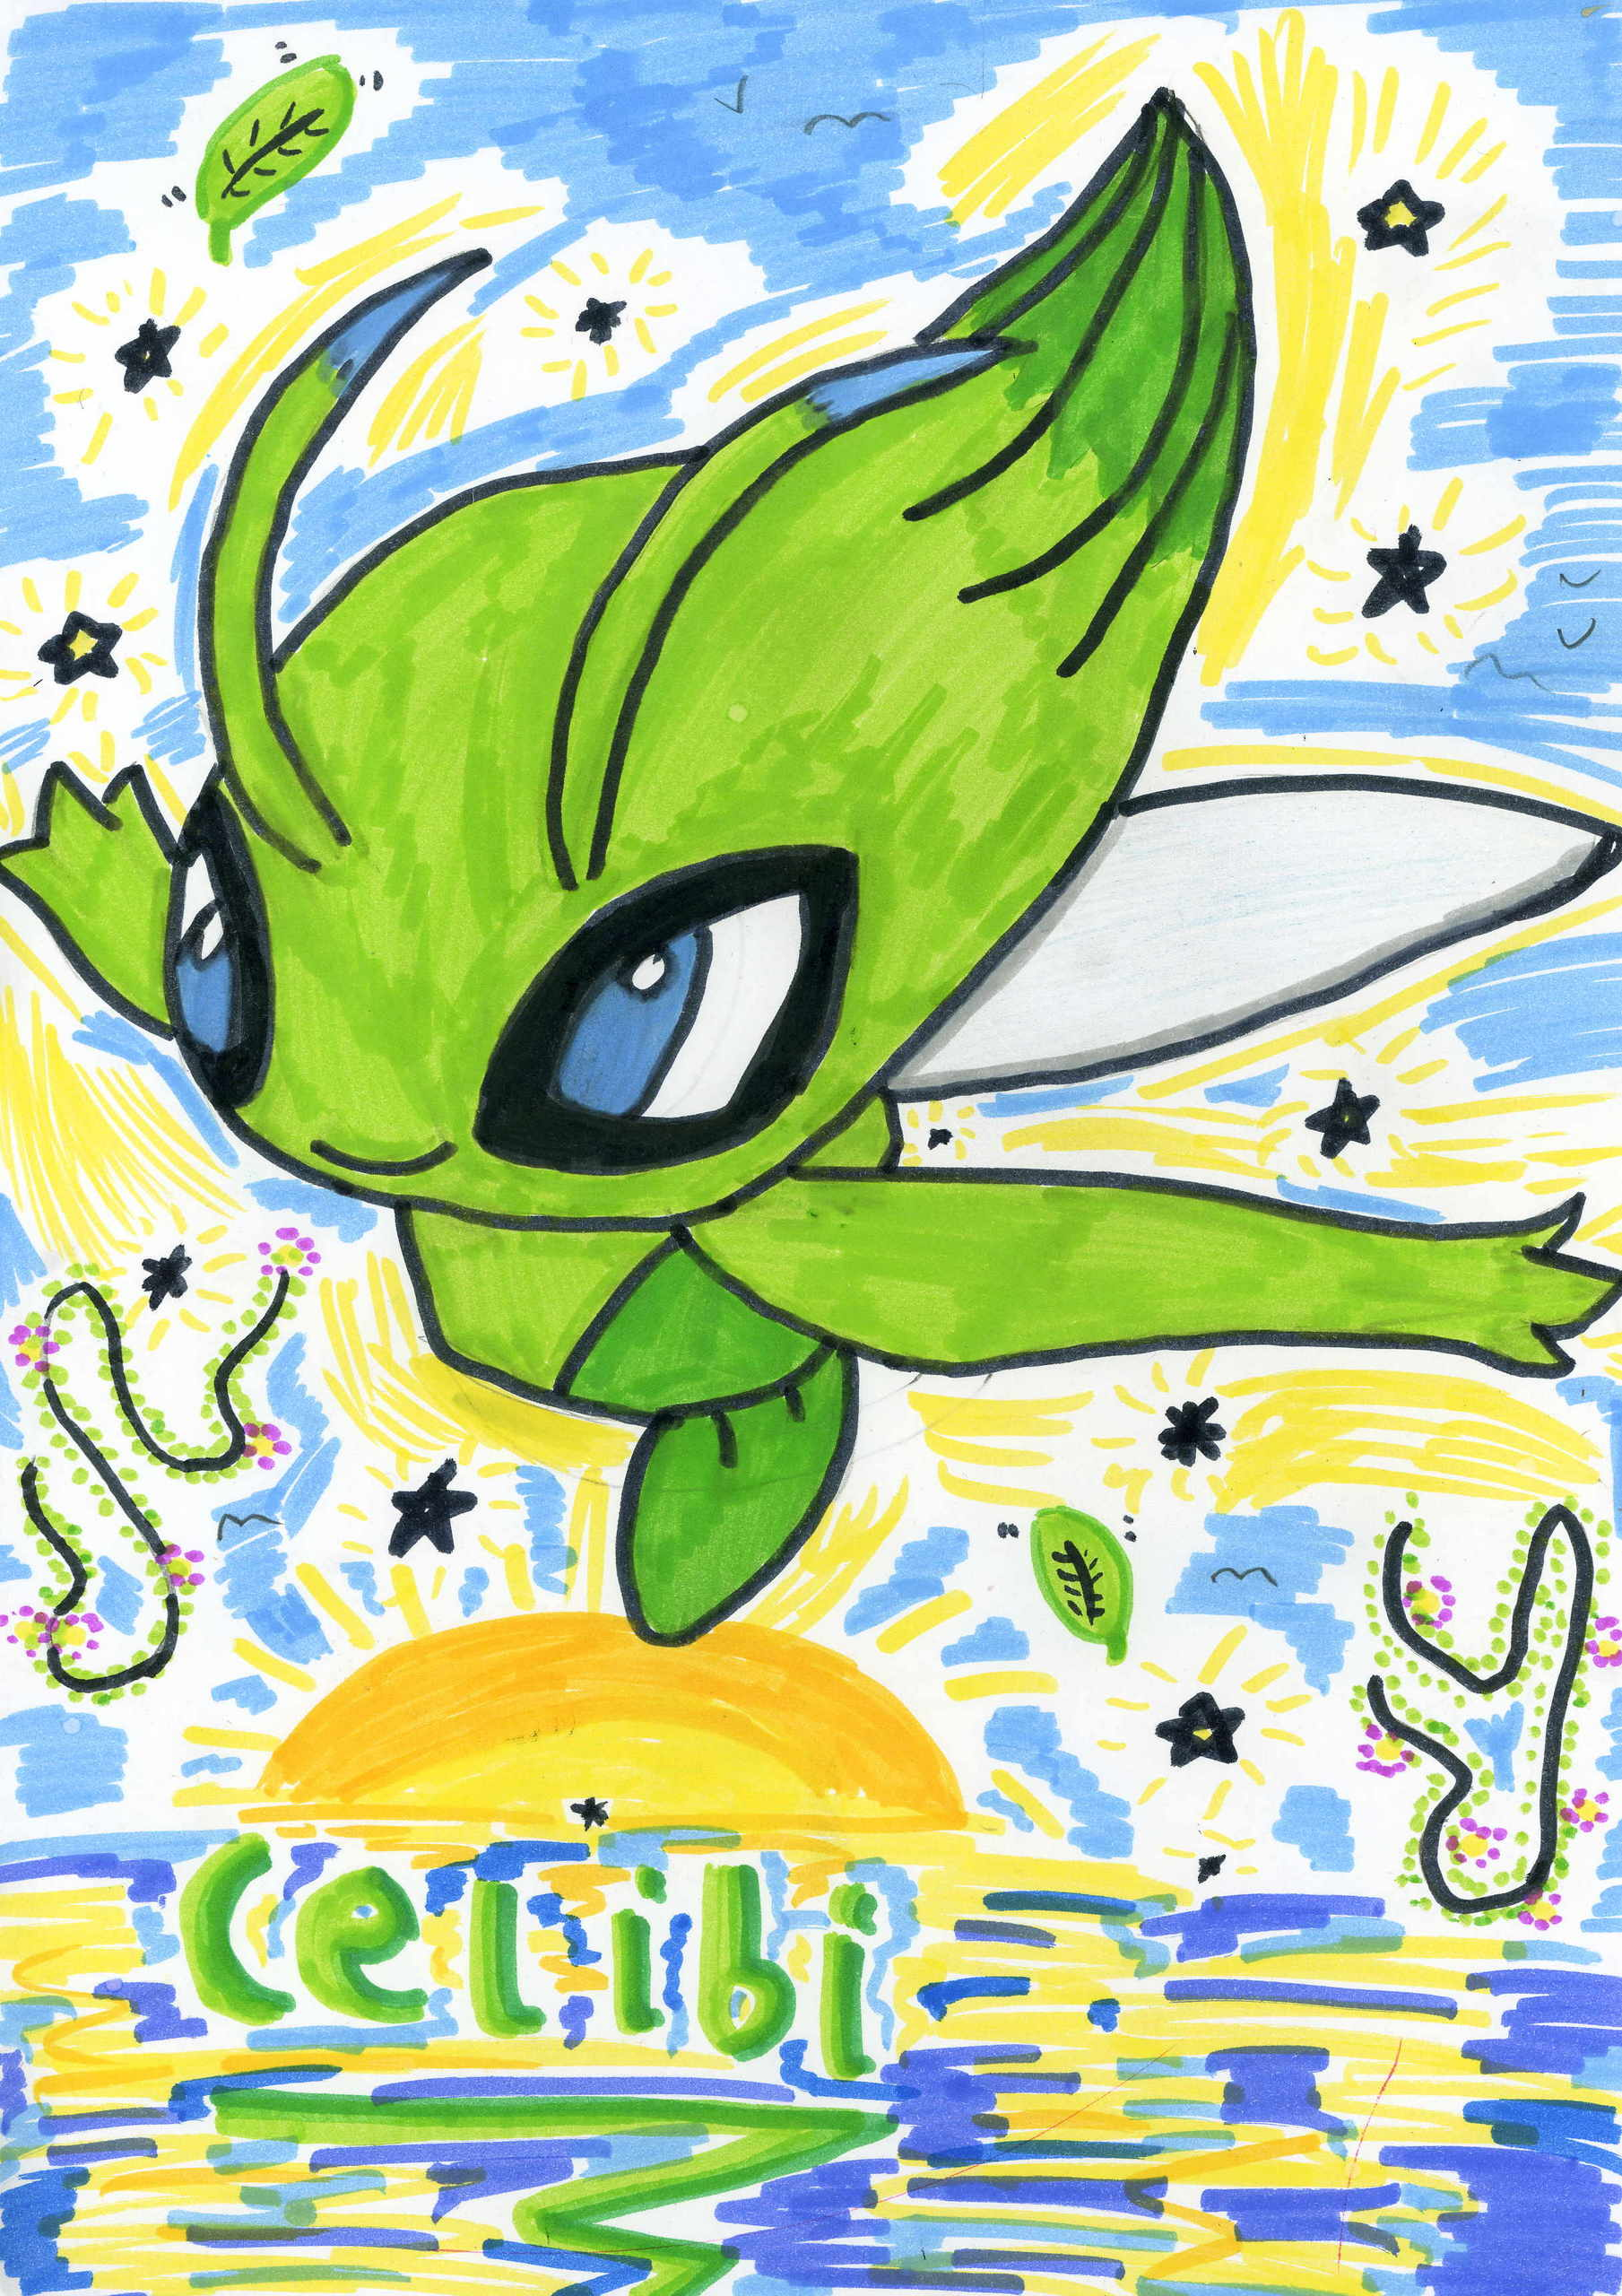 Celebi Pokemon Drawing Pokémon Celebi Drawing